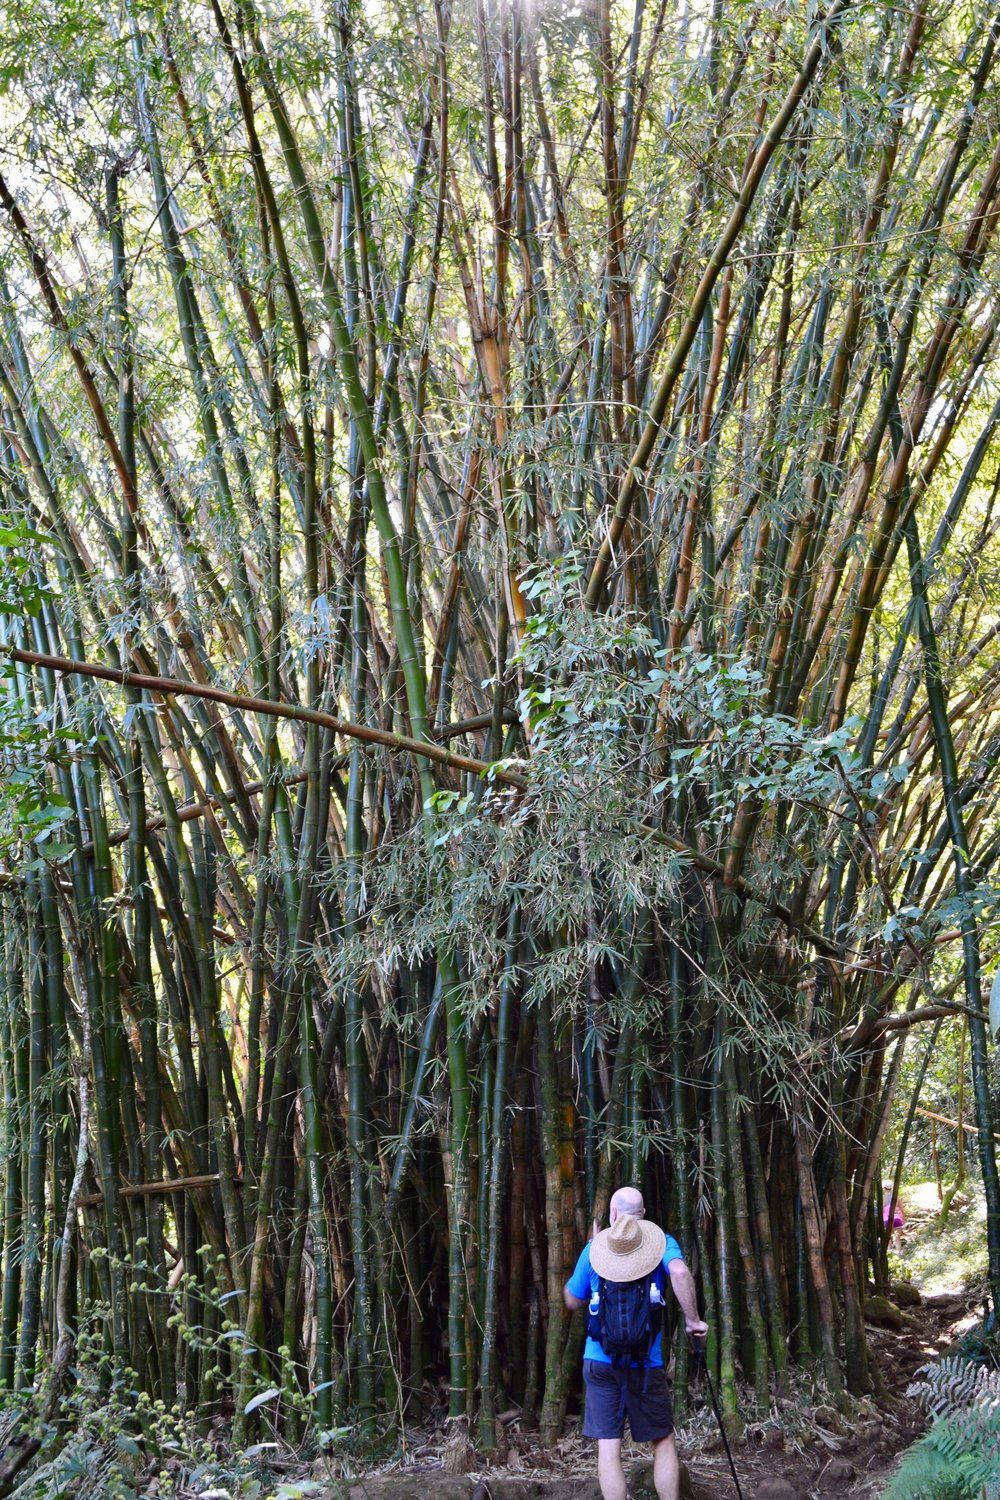 Ancient bamboo forest on trail.